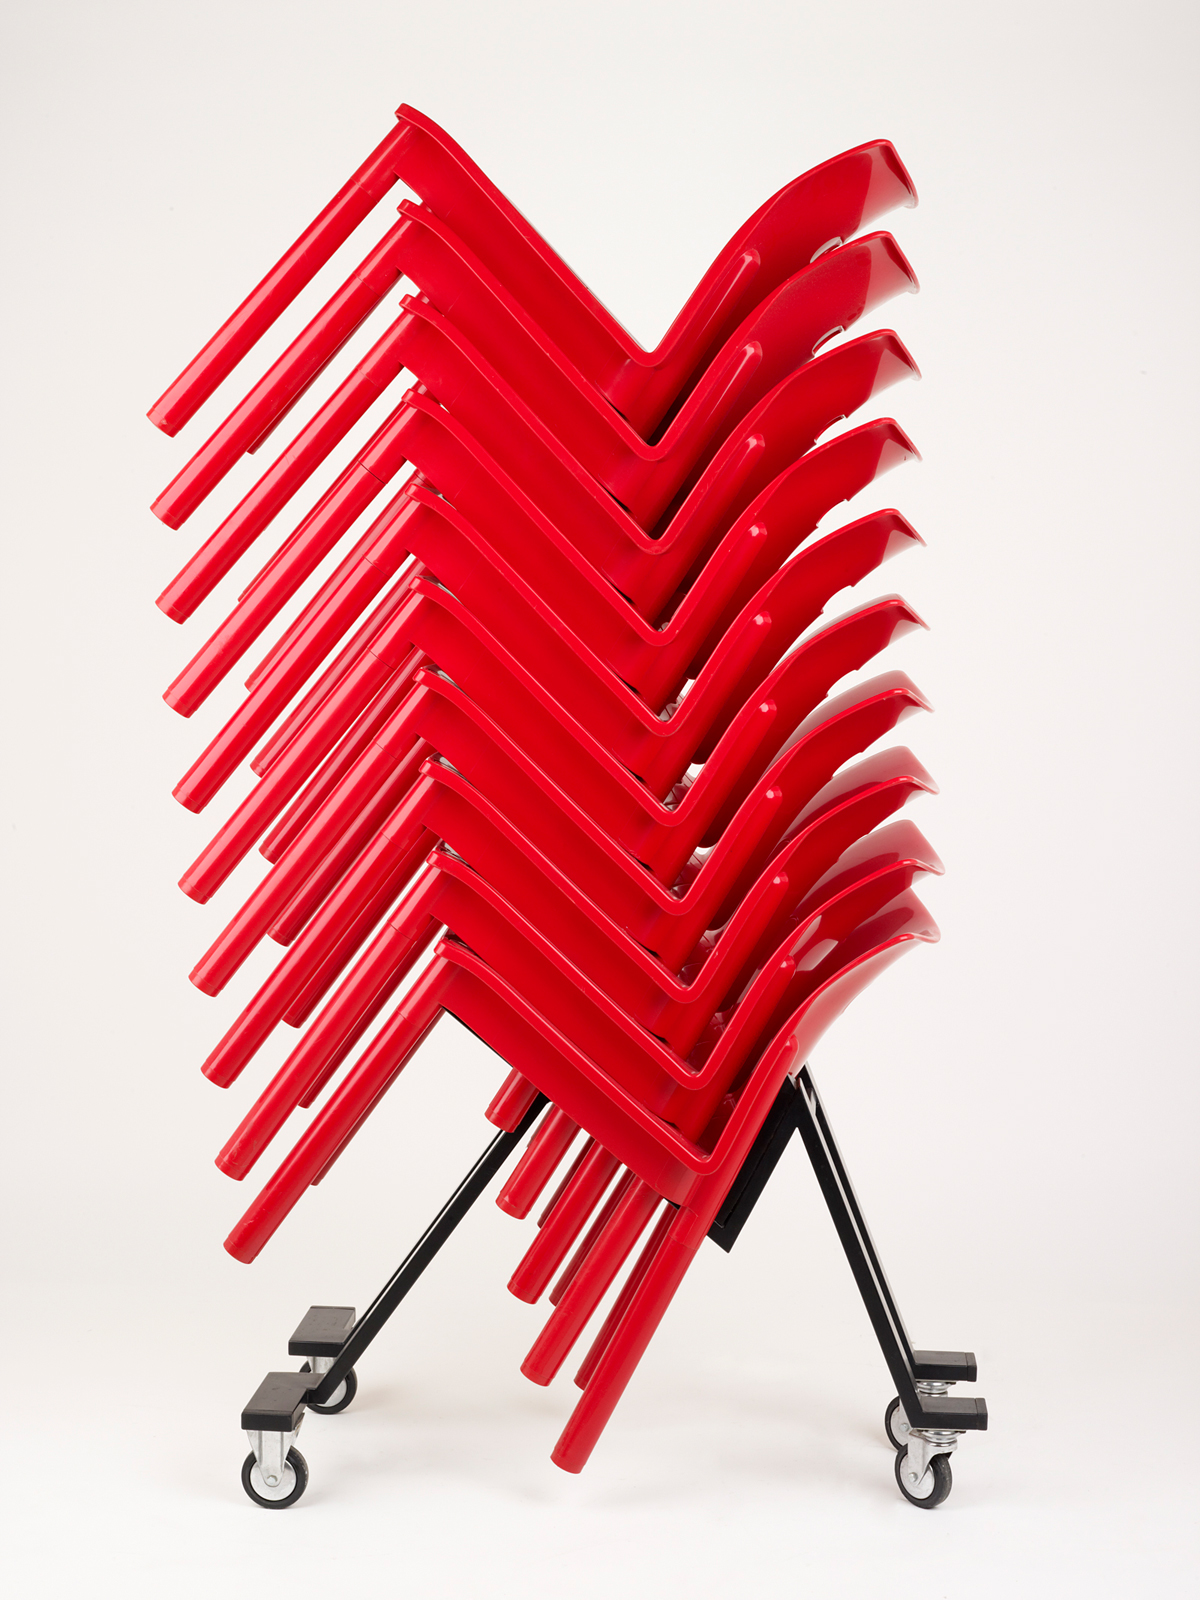 dm london stacking chair